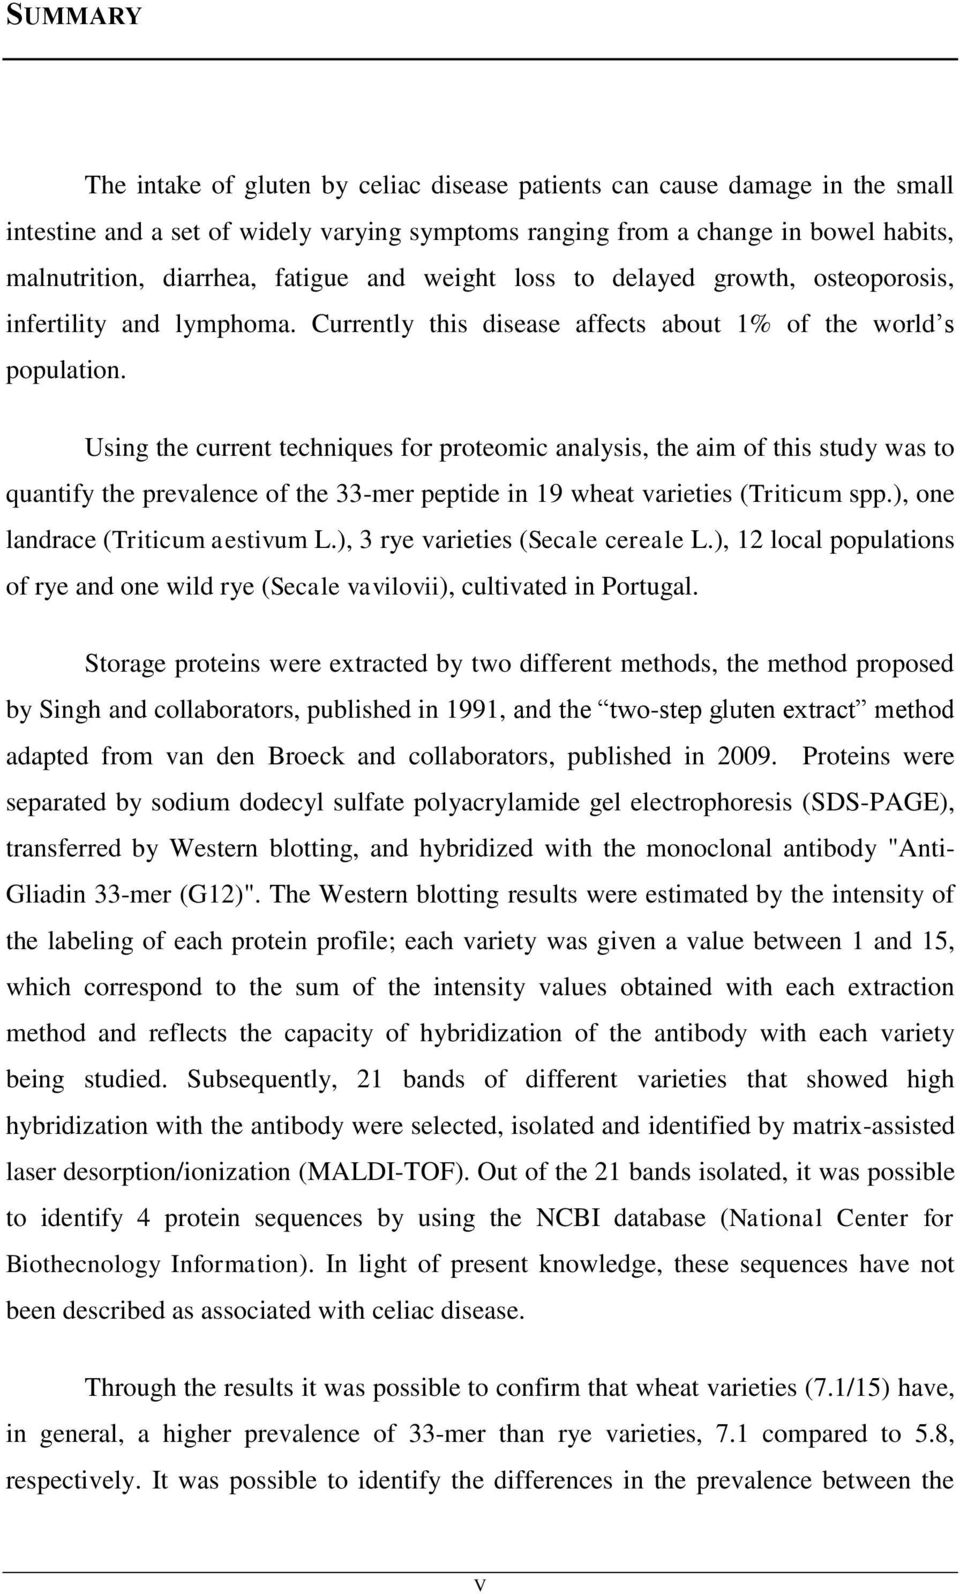 Using the current techniques for proteomic analysis, the aim of this study was to quantify the prevalence of the 33-mer peptide in 19 wheat varieties (Triticum spp.